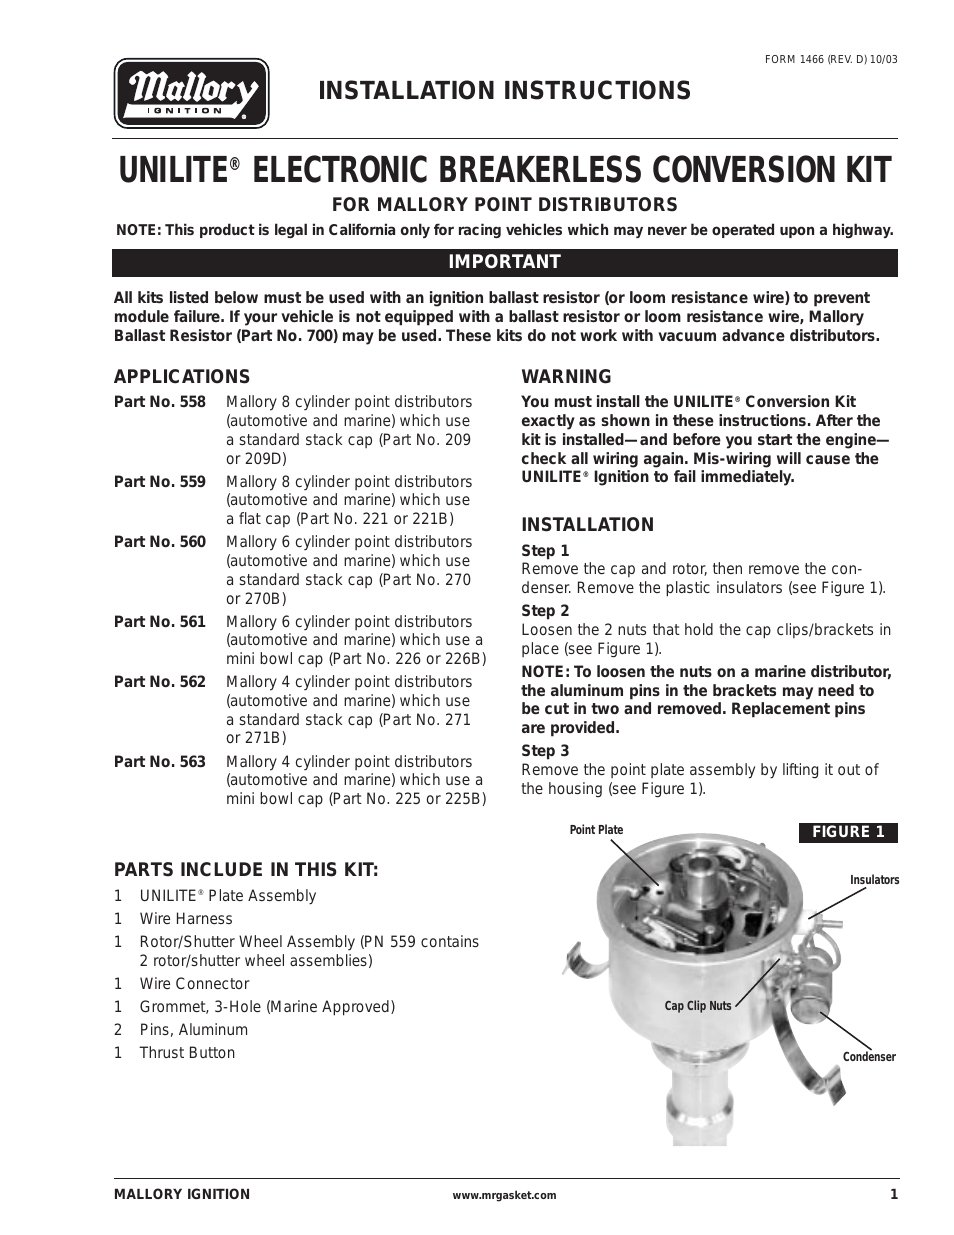 Mallory Magnetic Breakerless Wiring Diagram | Wiring Diagram - Mallory Magnetic Breakerless Distributor Wiring Diagram